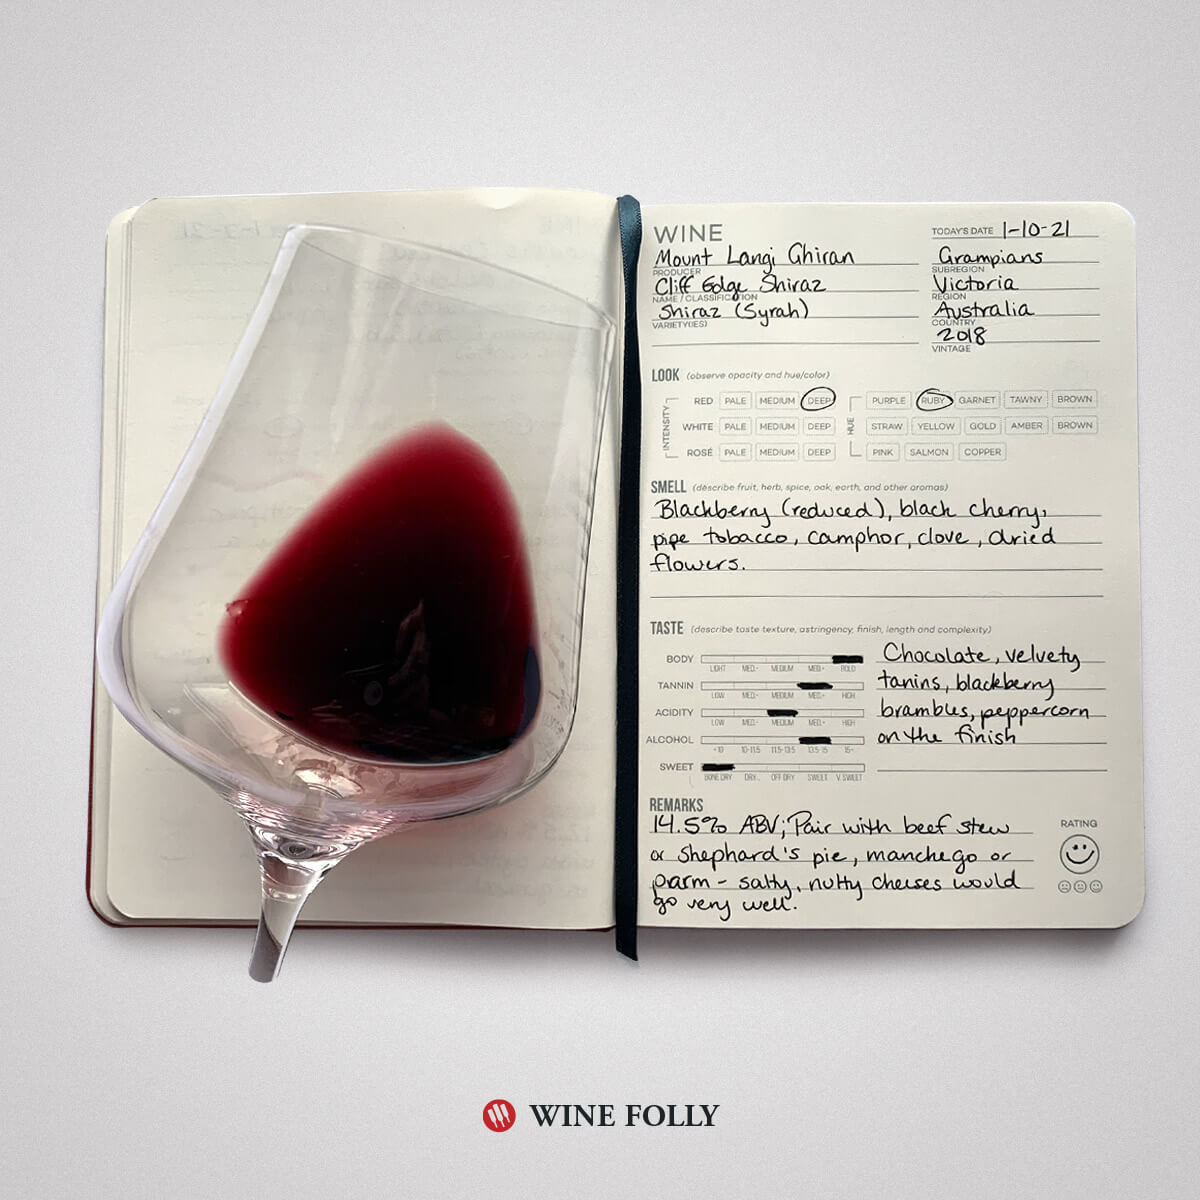 shiraz-wine-tasting-notes-journal